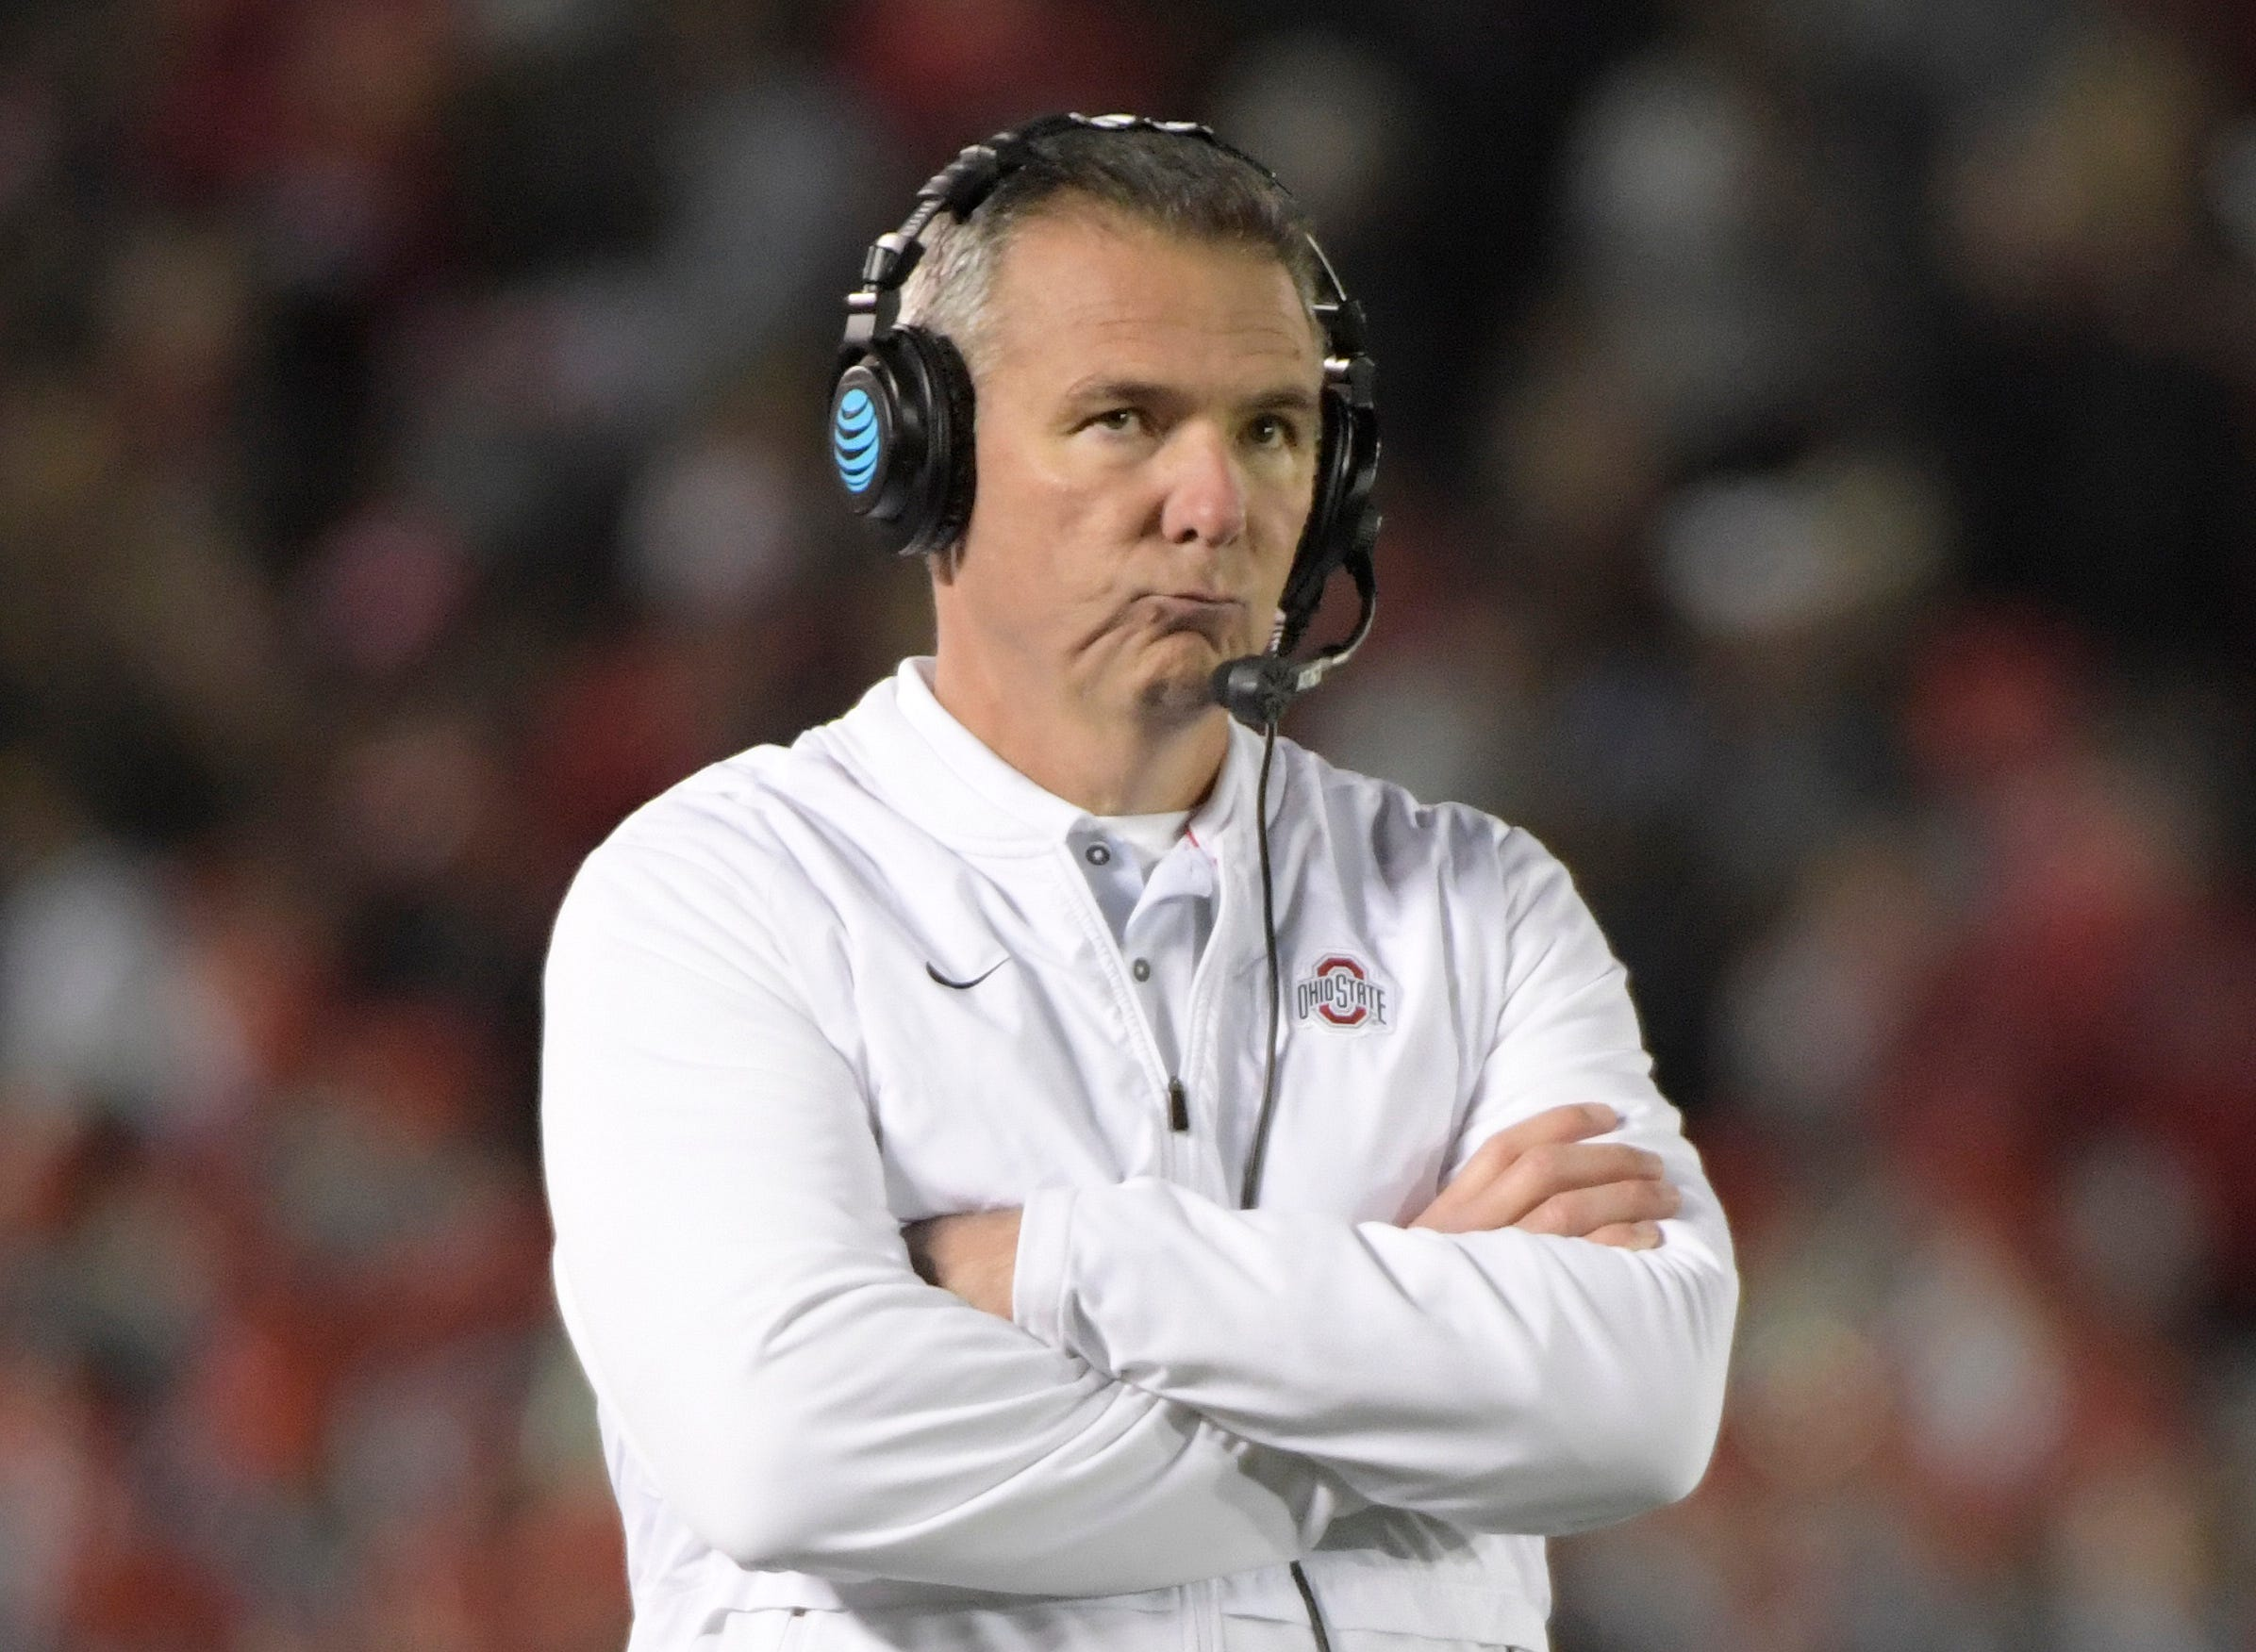 What can Jacksonville Jaguars expect from Urban Meyer? Five takeaways from his introduction